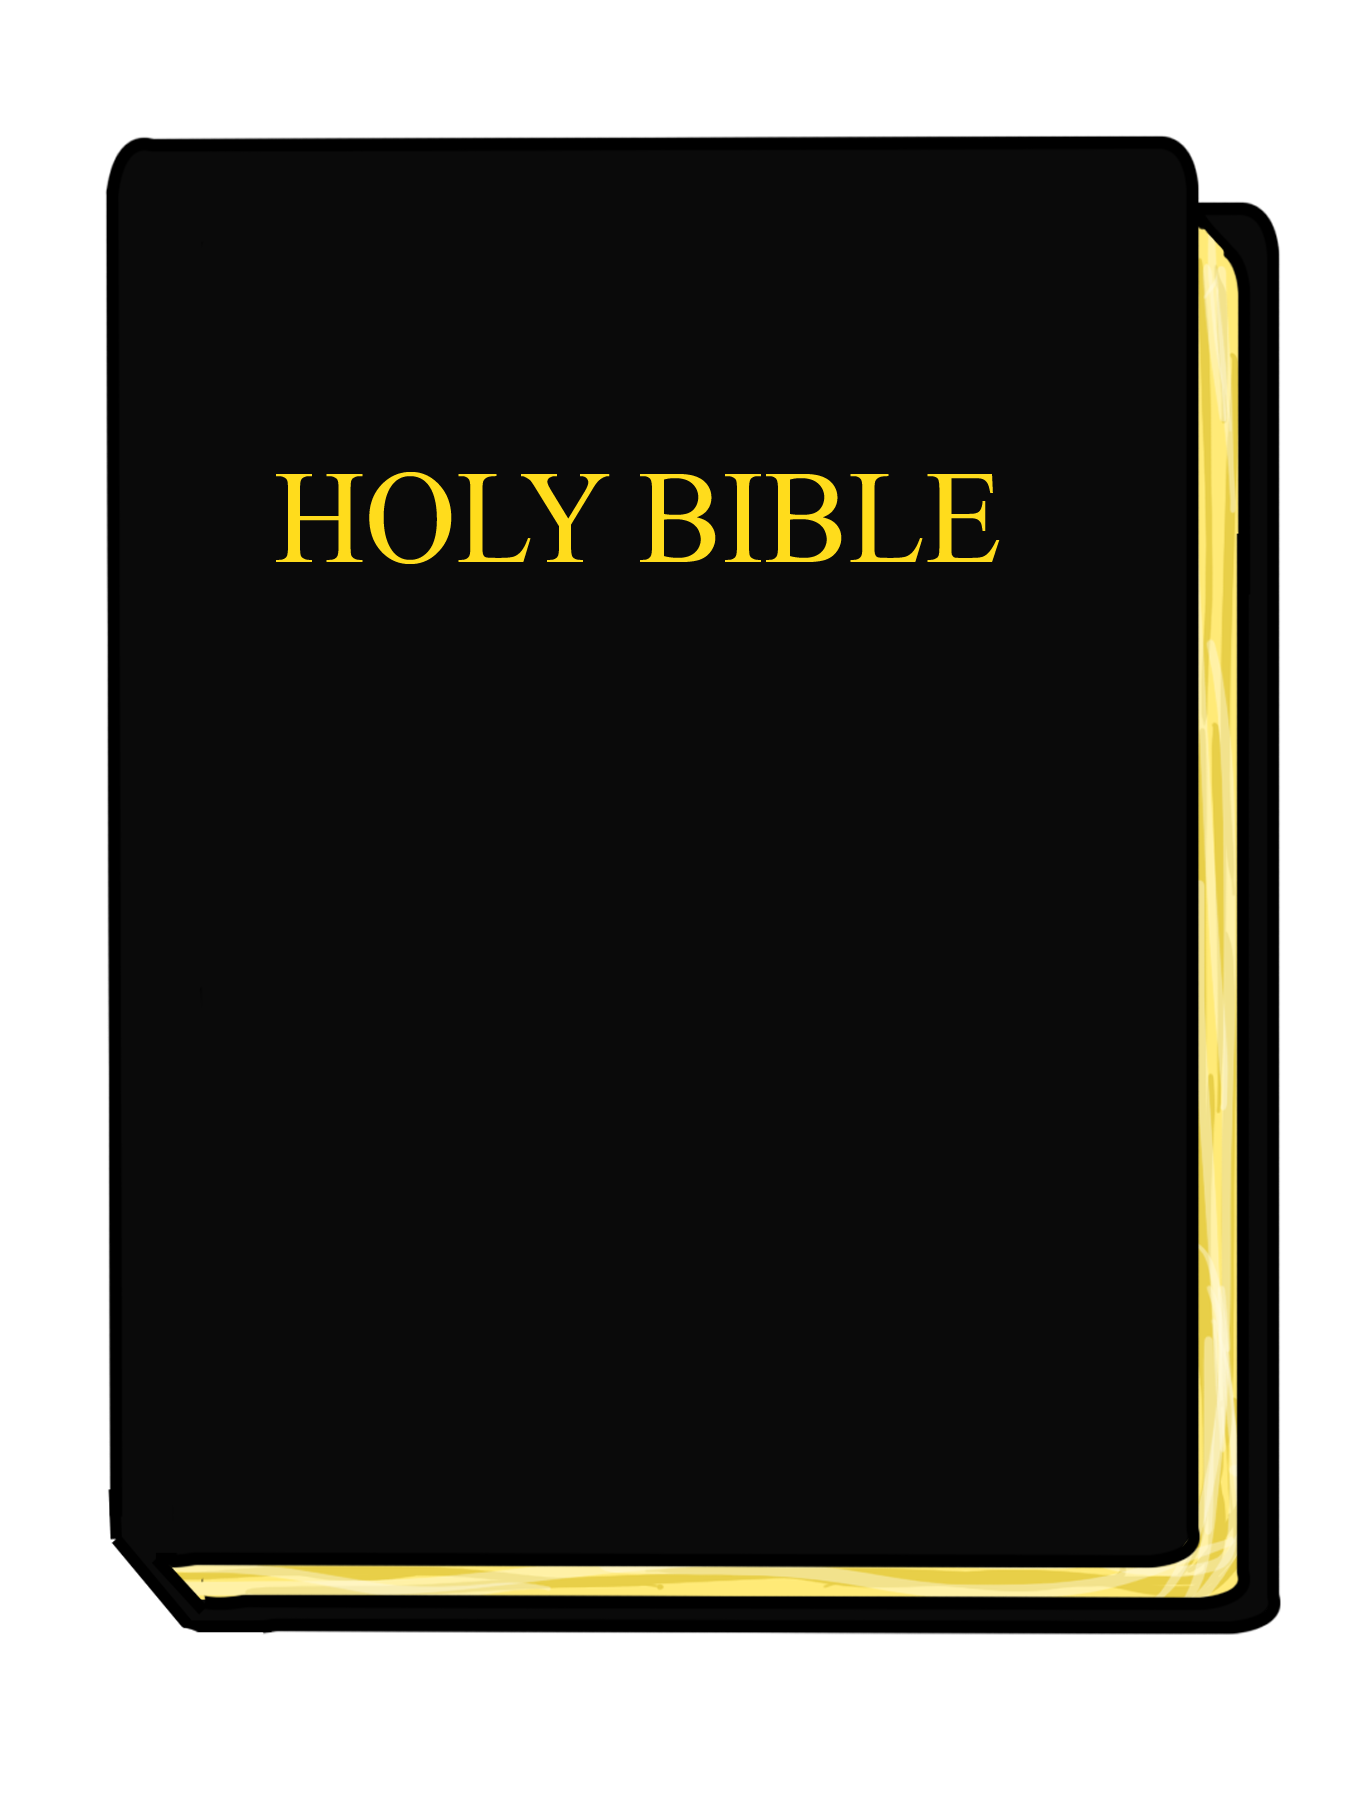 Clipartlord Com Exclusive This Holy Bible Clip Art Is Perfect For Use